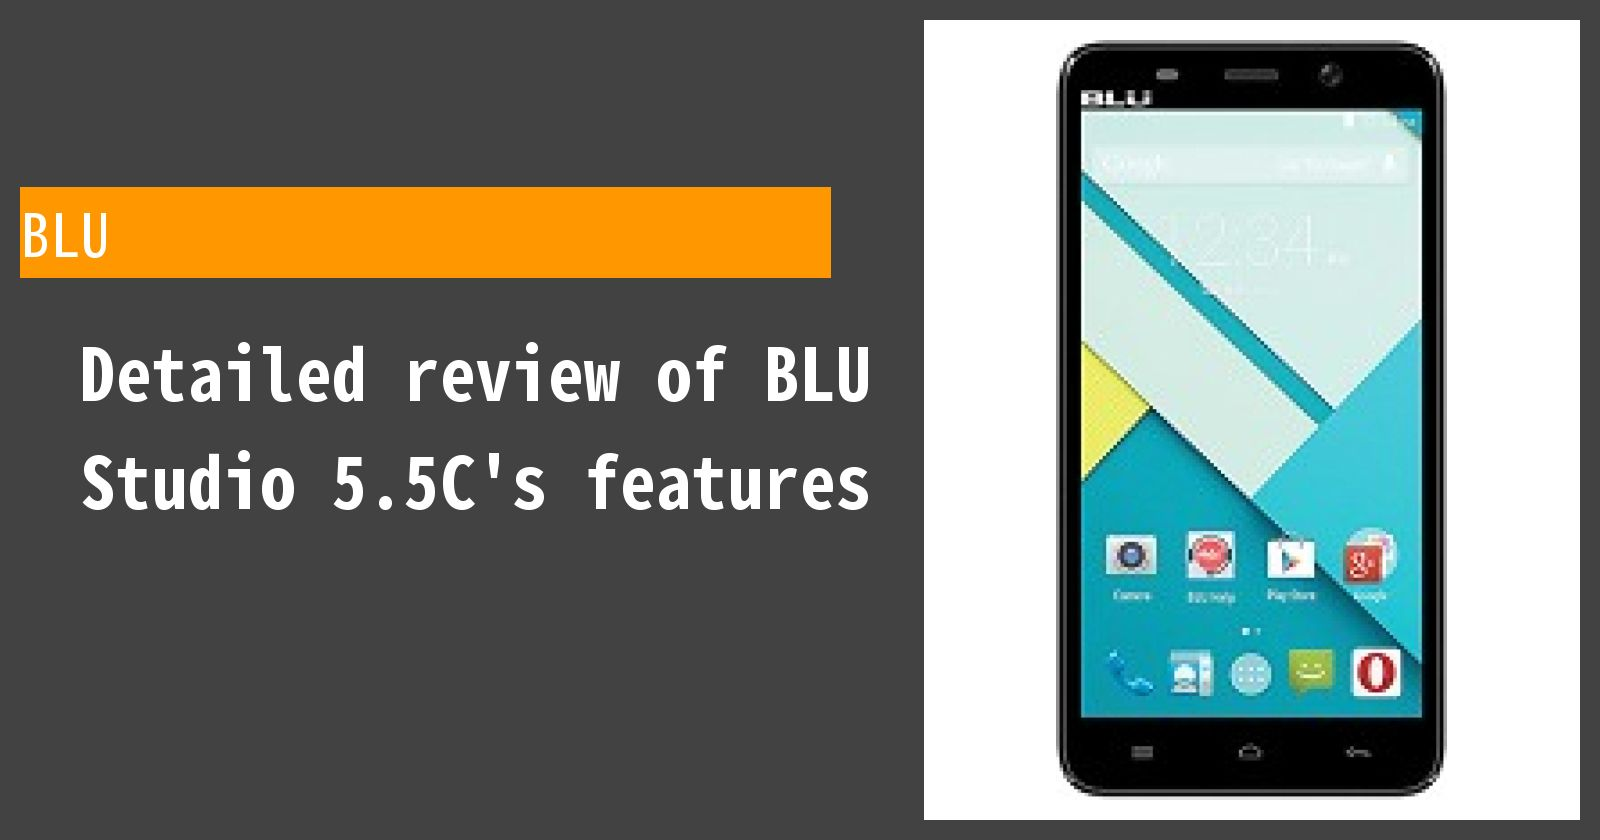 Detailed review of BLU Studio 5.5C's features